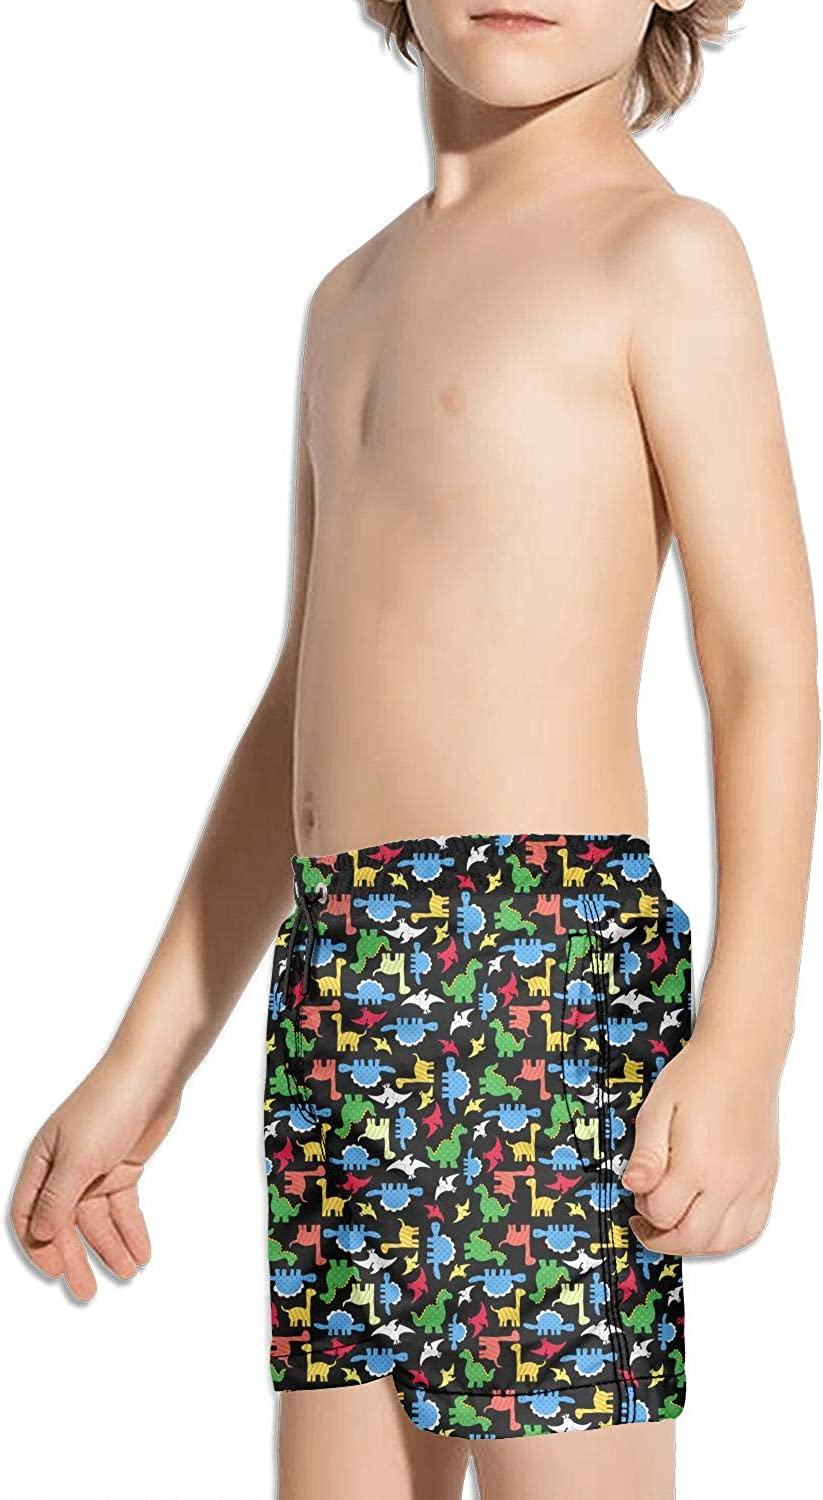 Colorful Dinosaurs Black Background Childrens Beach Pants Board Shorts Jogging Casual Sport Floral Shorts